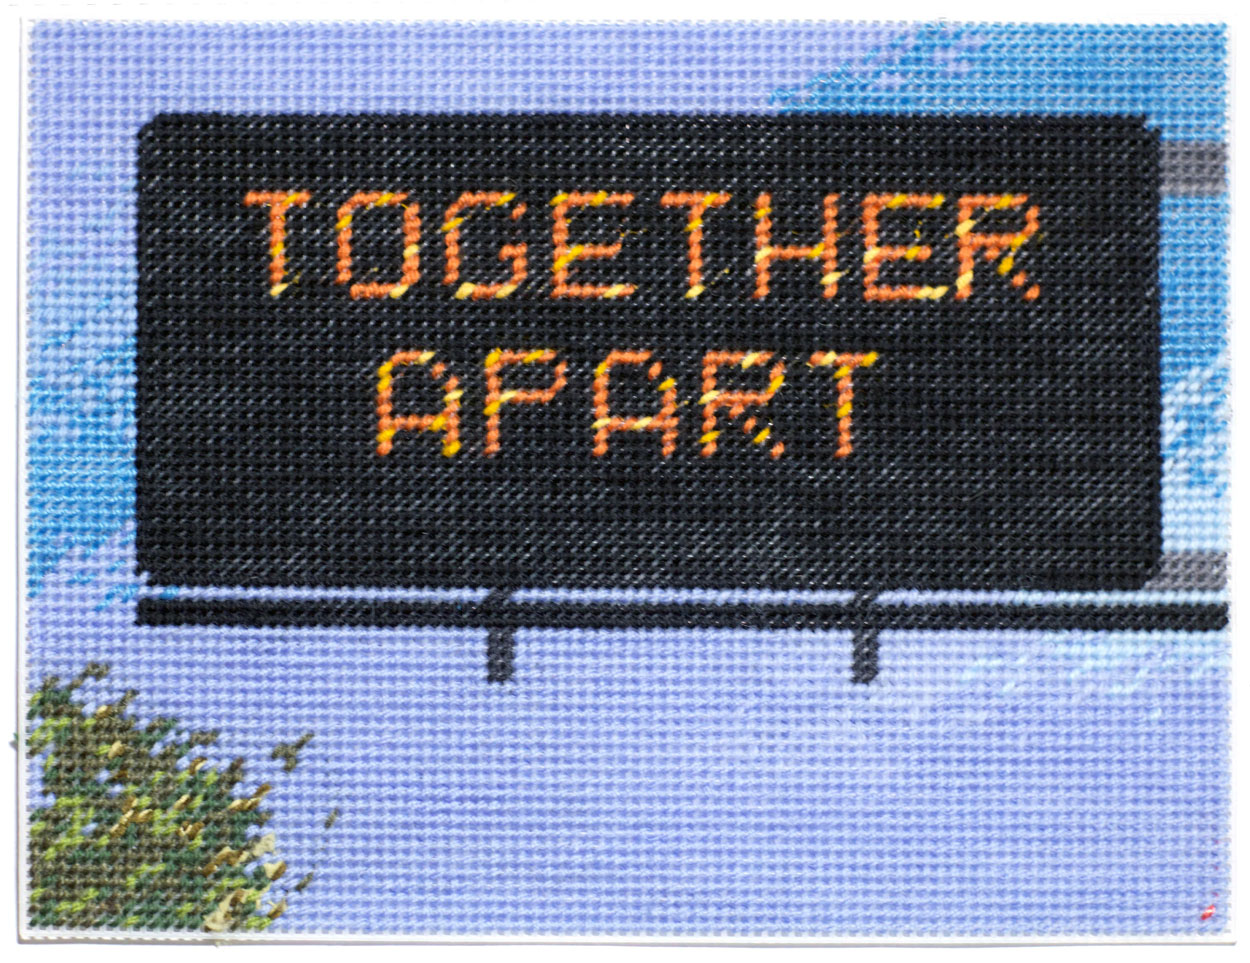 MH_TOGETHER APART